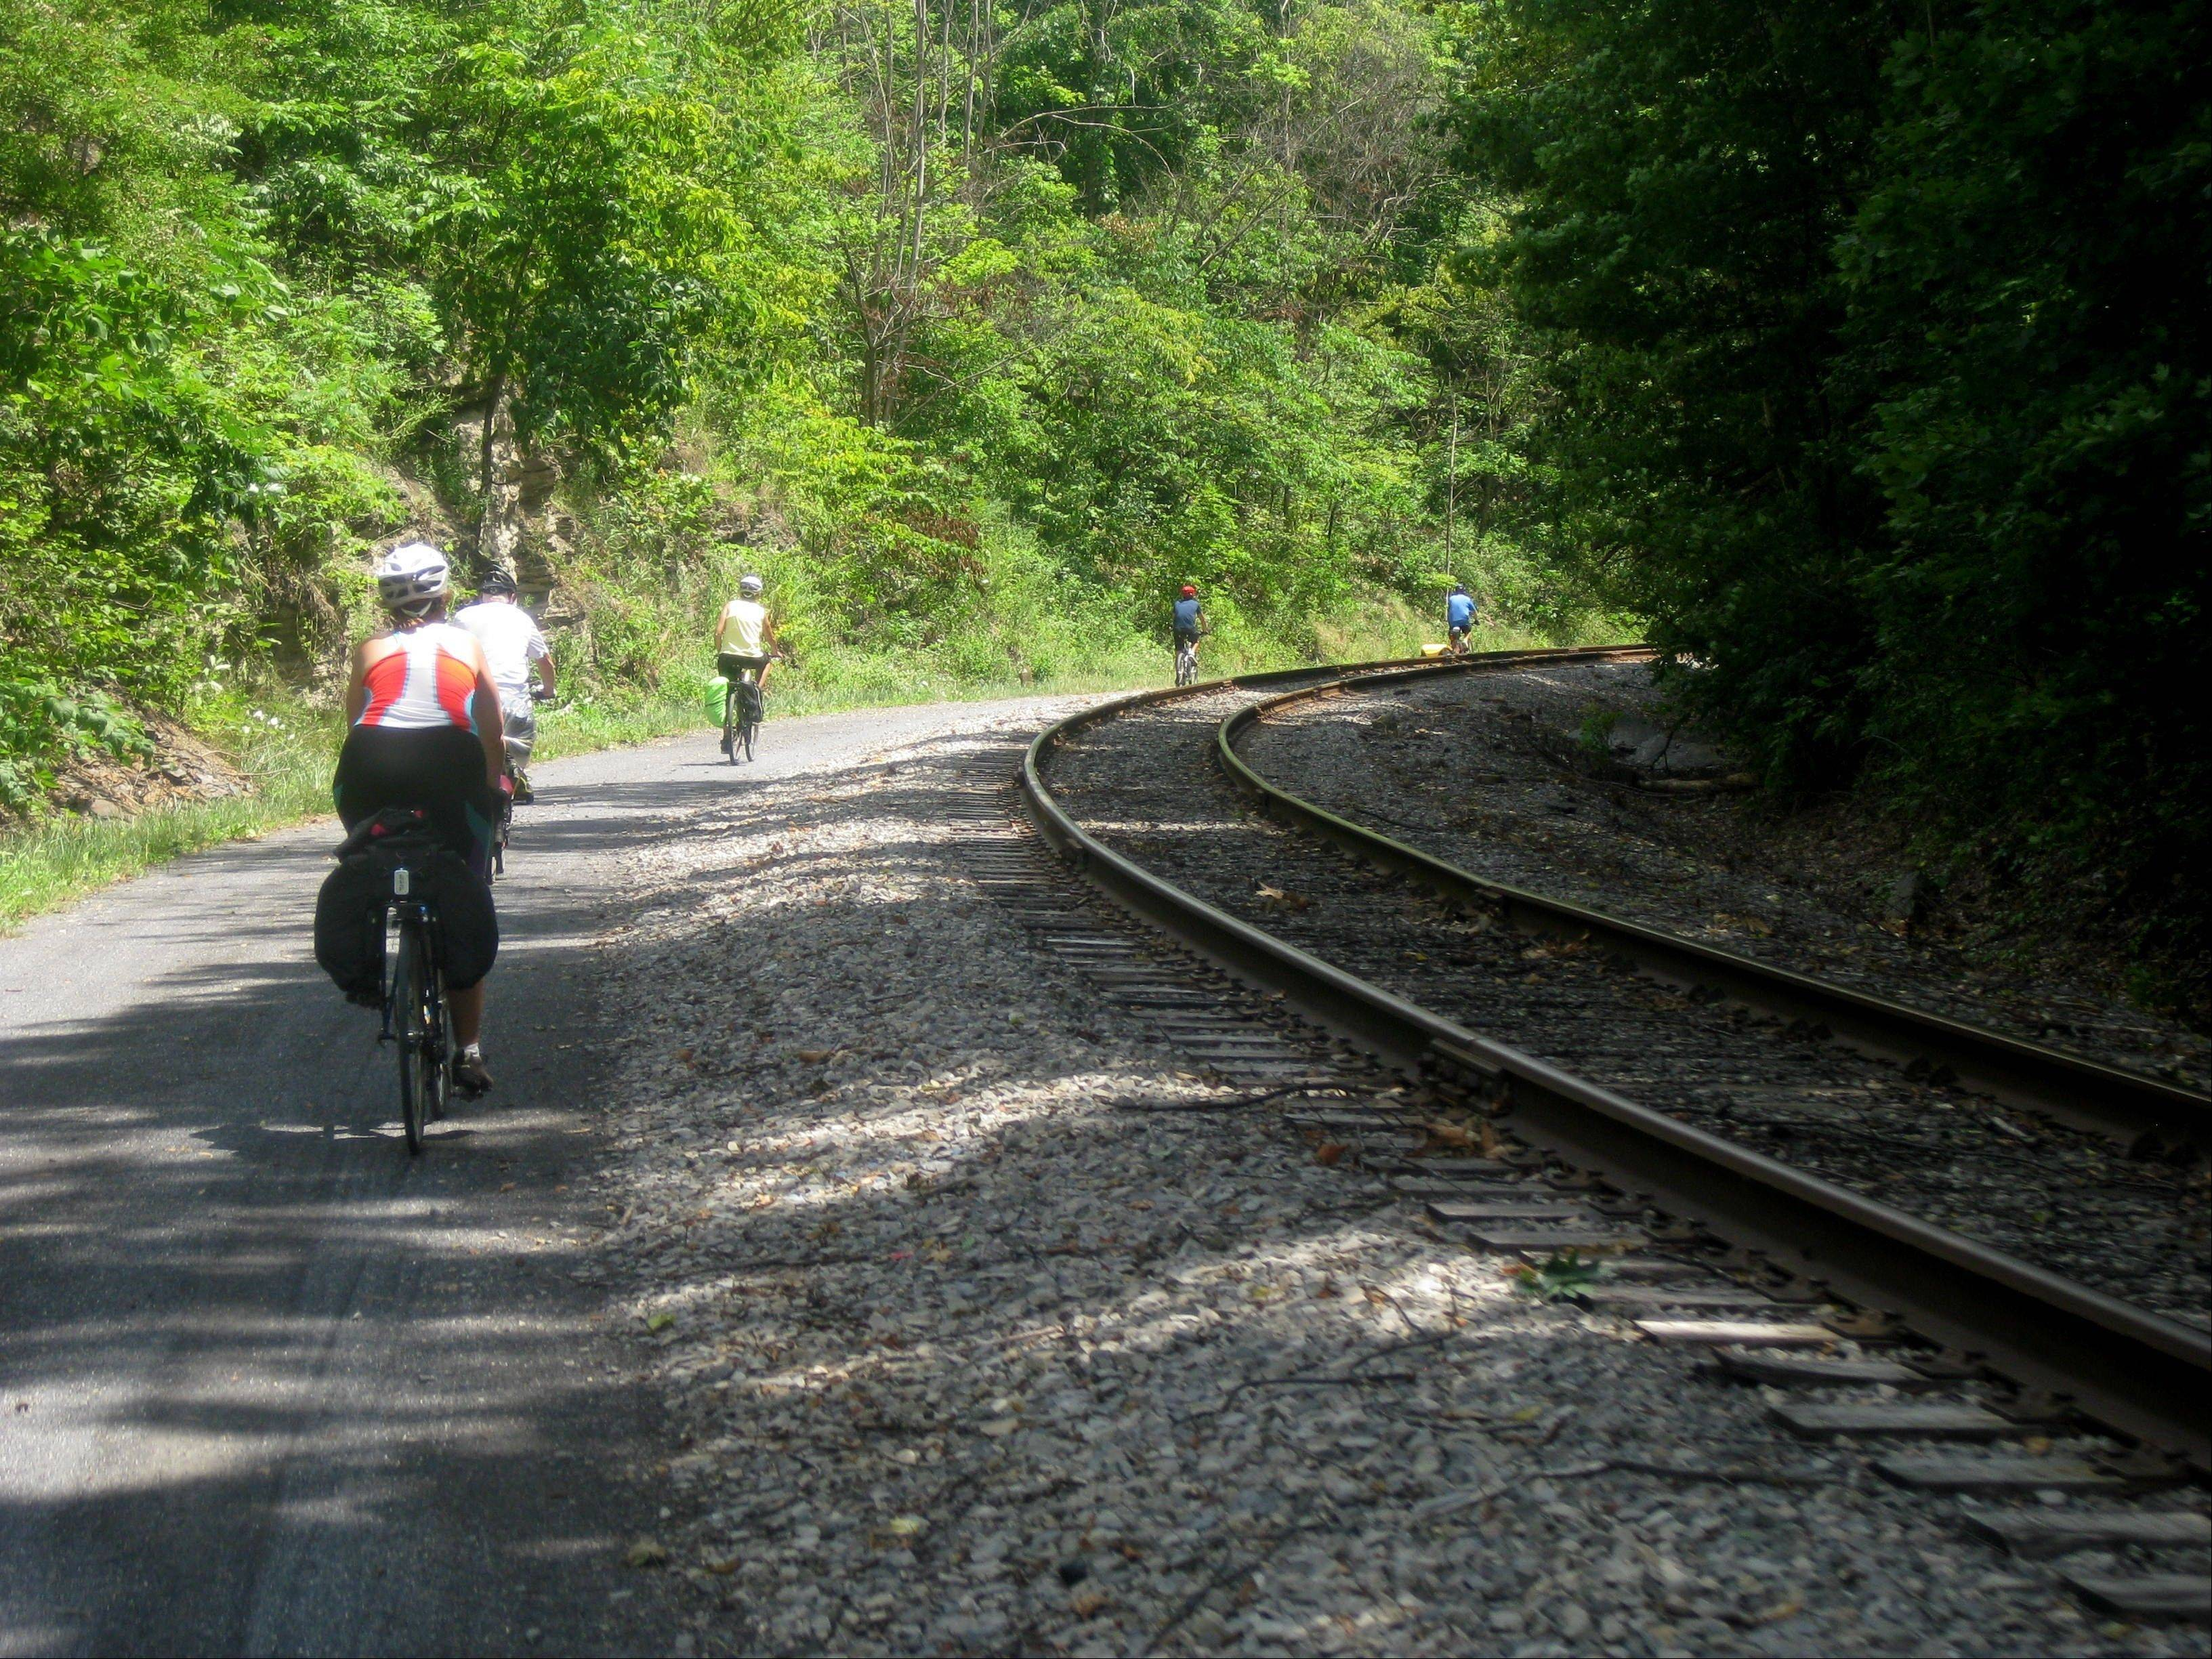 Bicyclists embark on the long descent into Cumberland, Md., in the final leg of a three-day ride on the Great Allegheny Passage.